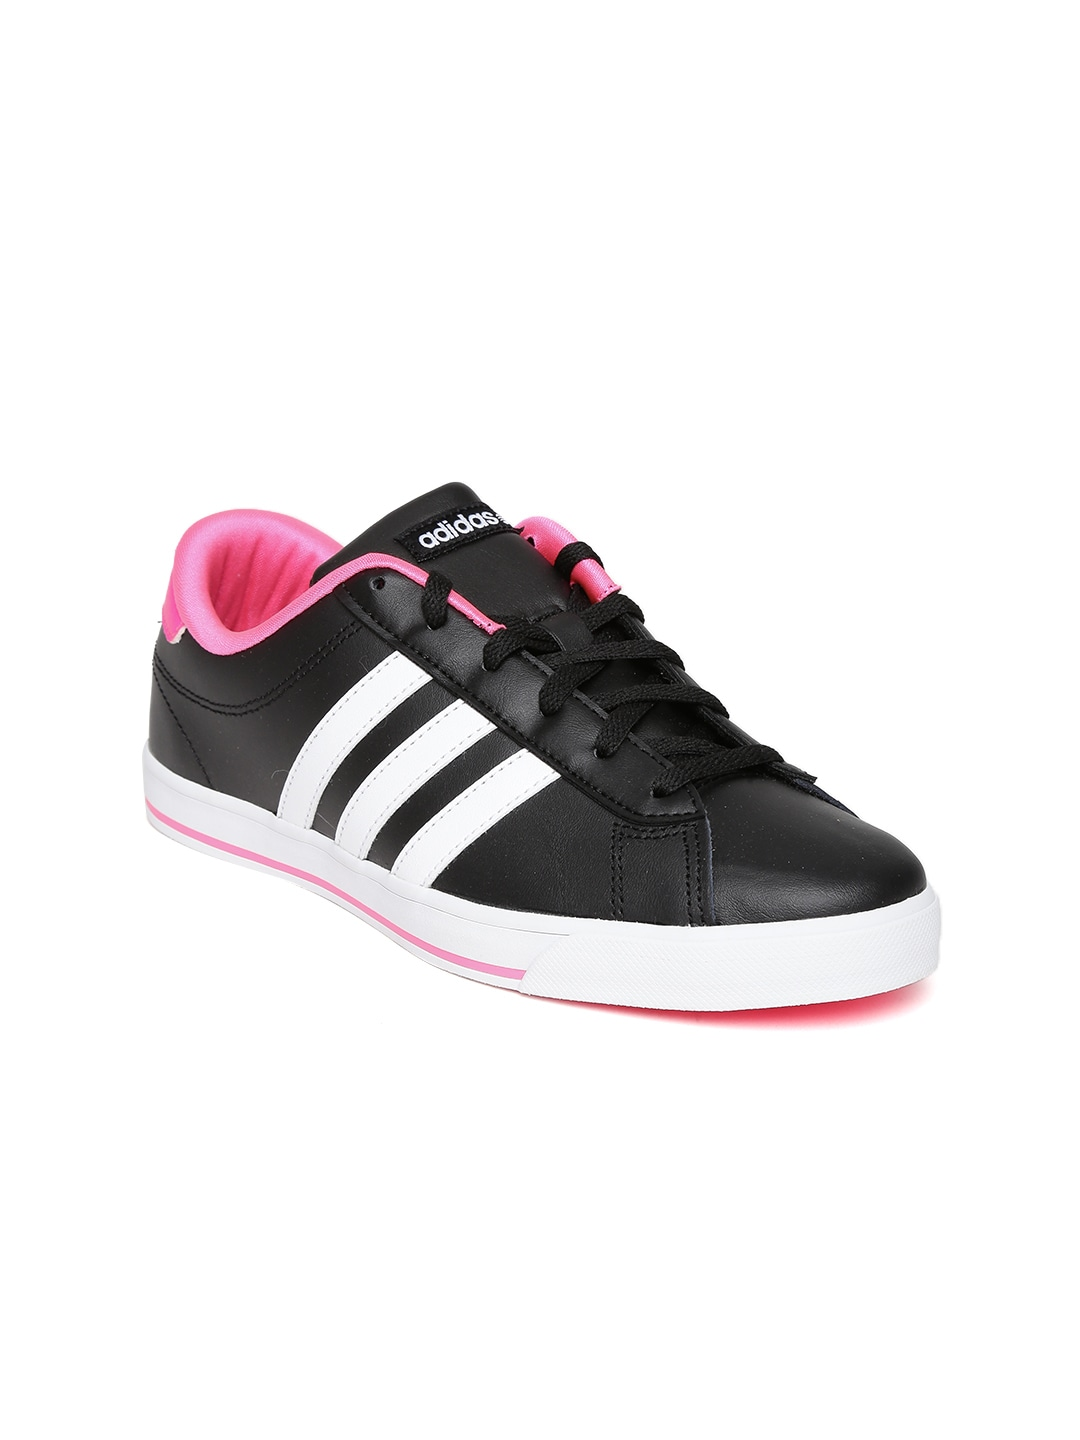 quality design ab3fb e3195 ... neo women black daily qt w sneakers price in india bd84c 29121 best  price adidas se daily qt w black purple triple stripes casual shoes neo  2012 g52003 ...